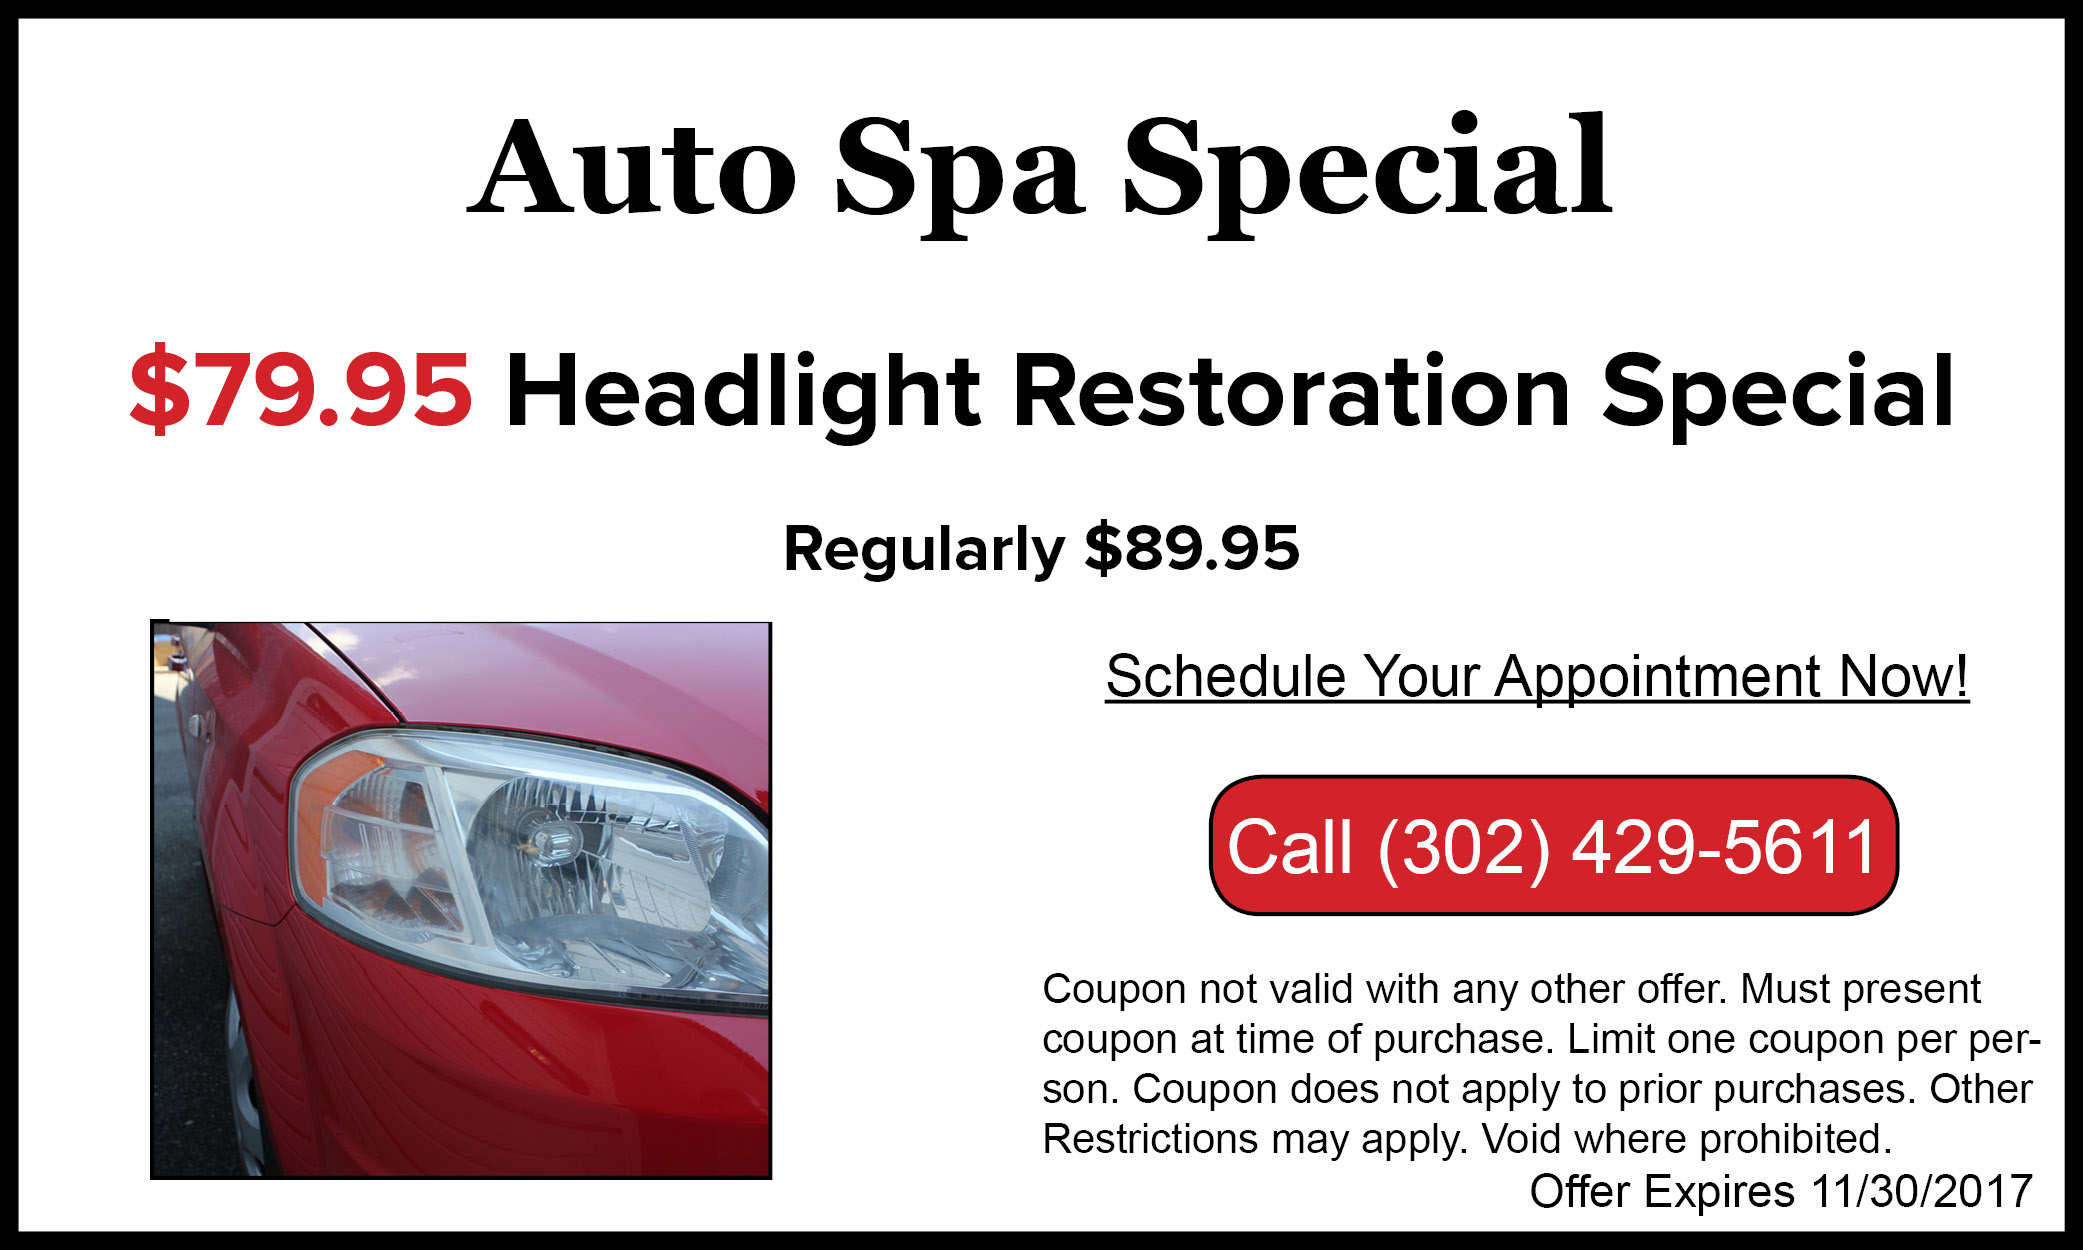 Auto Spa - Headlight - November 2017.jpg